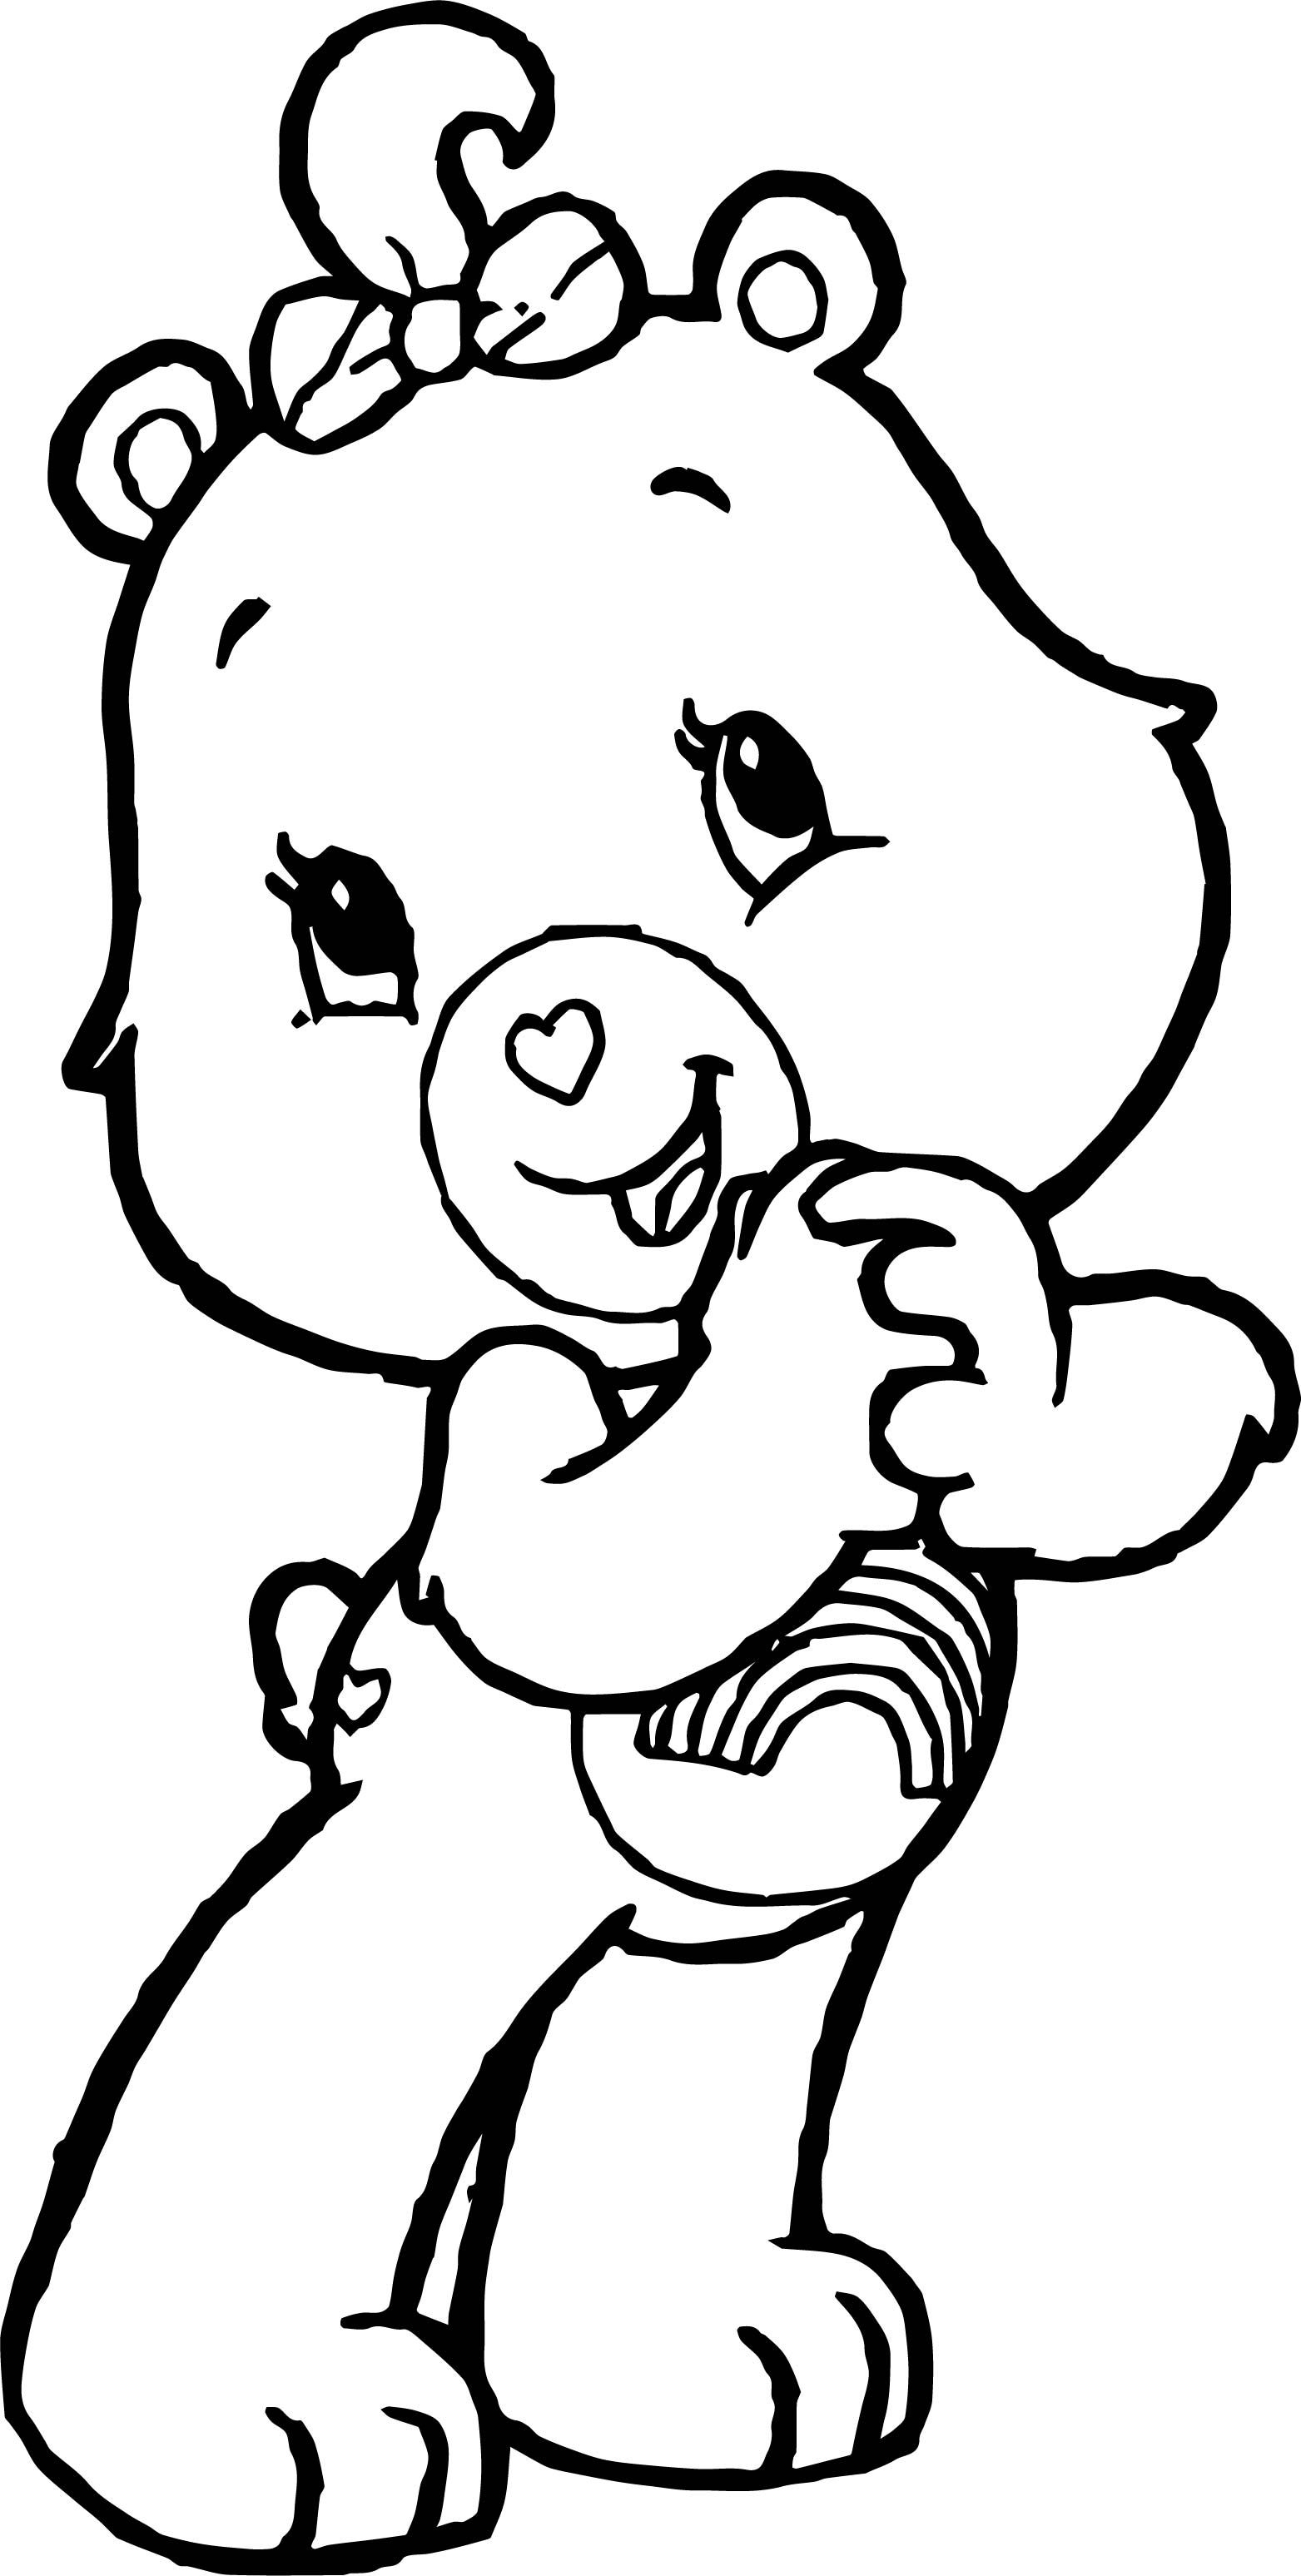 Bear Big Head Coloring Page Coloring Pages Coloring Pages For